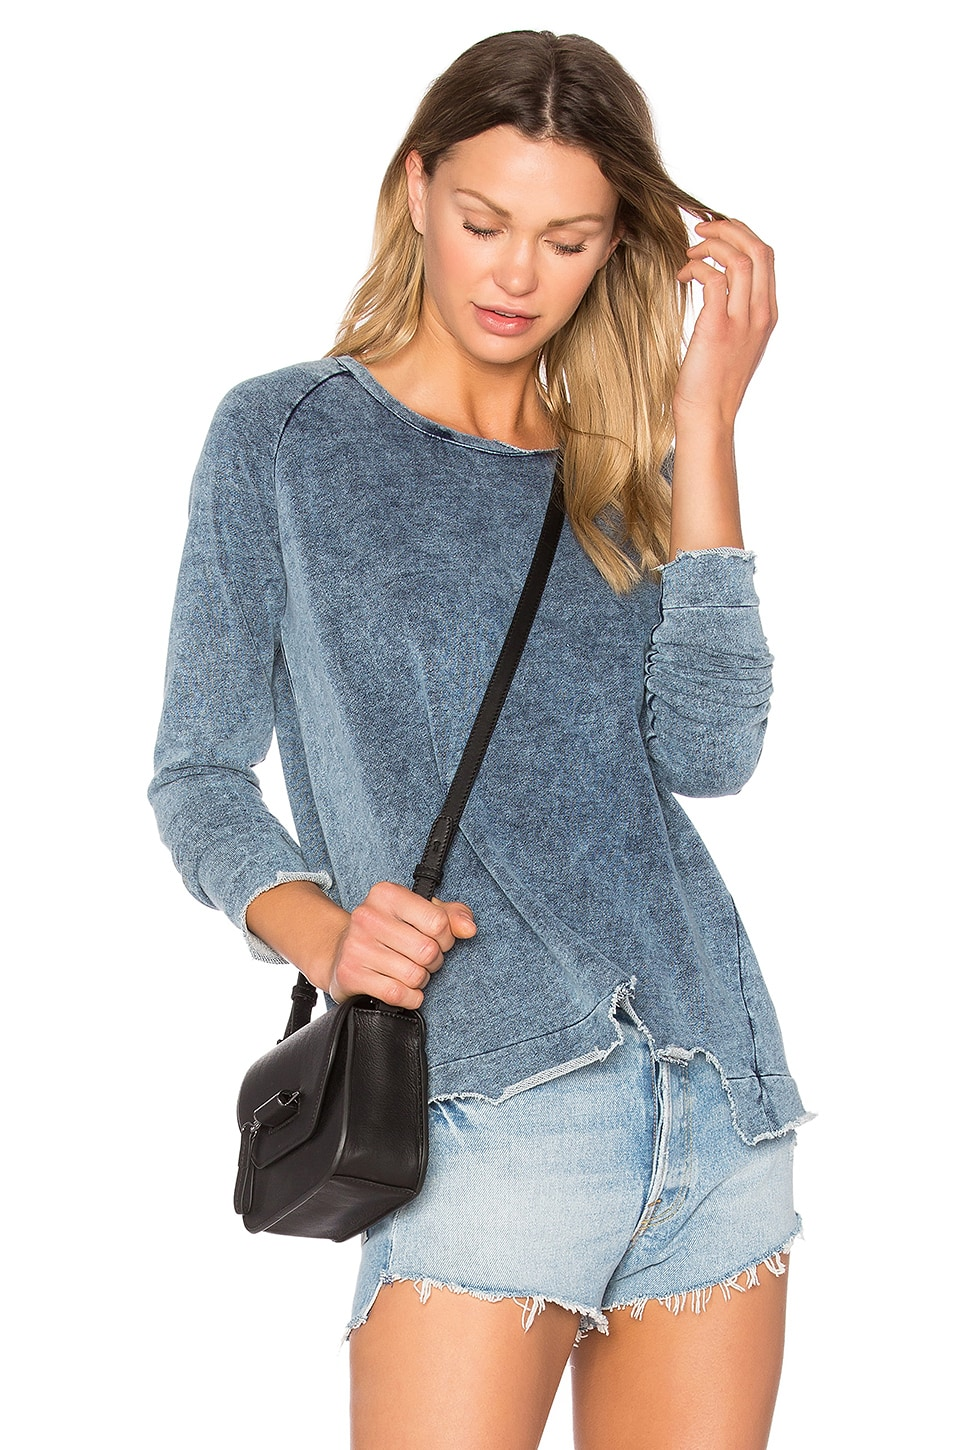 Brook Indigo Sweatshirt by Generation Love